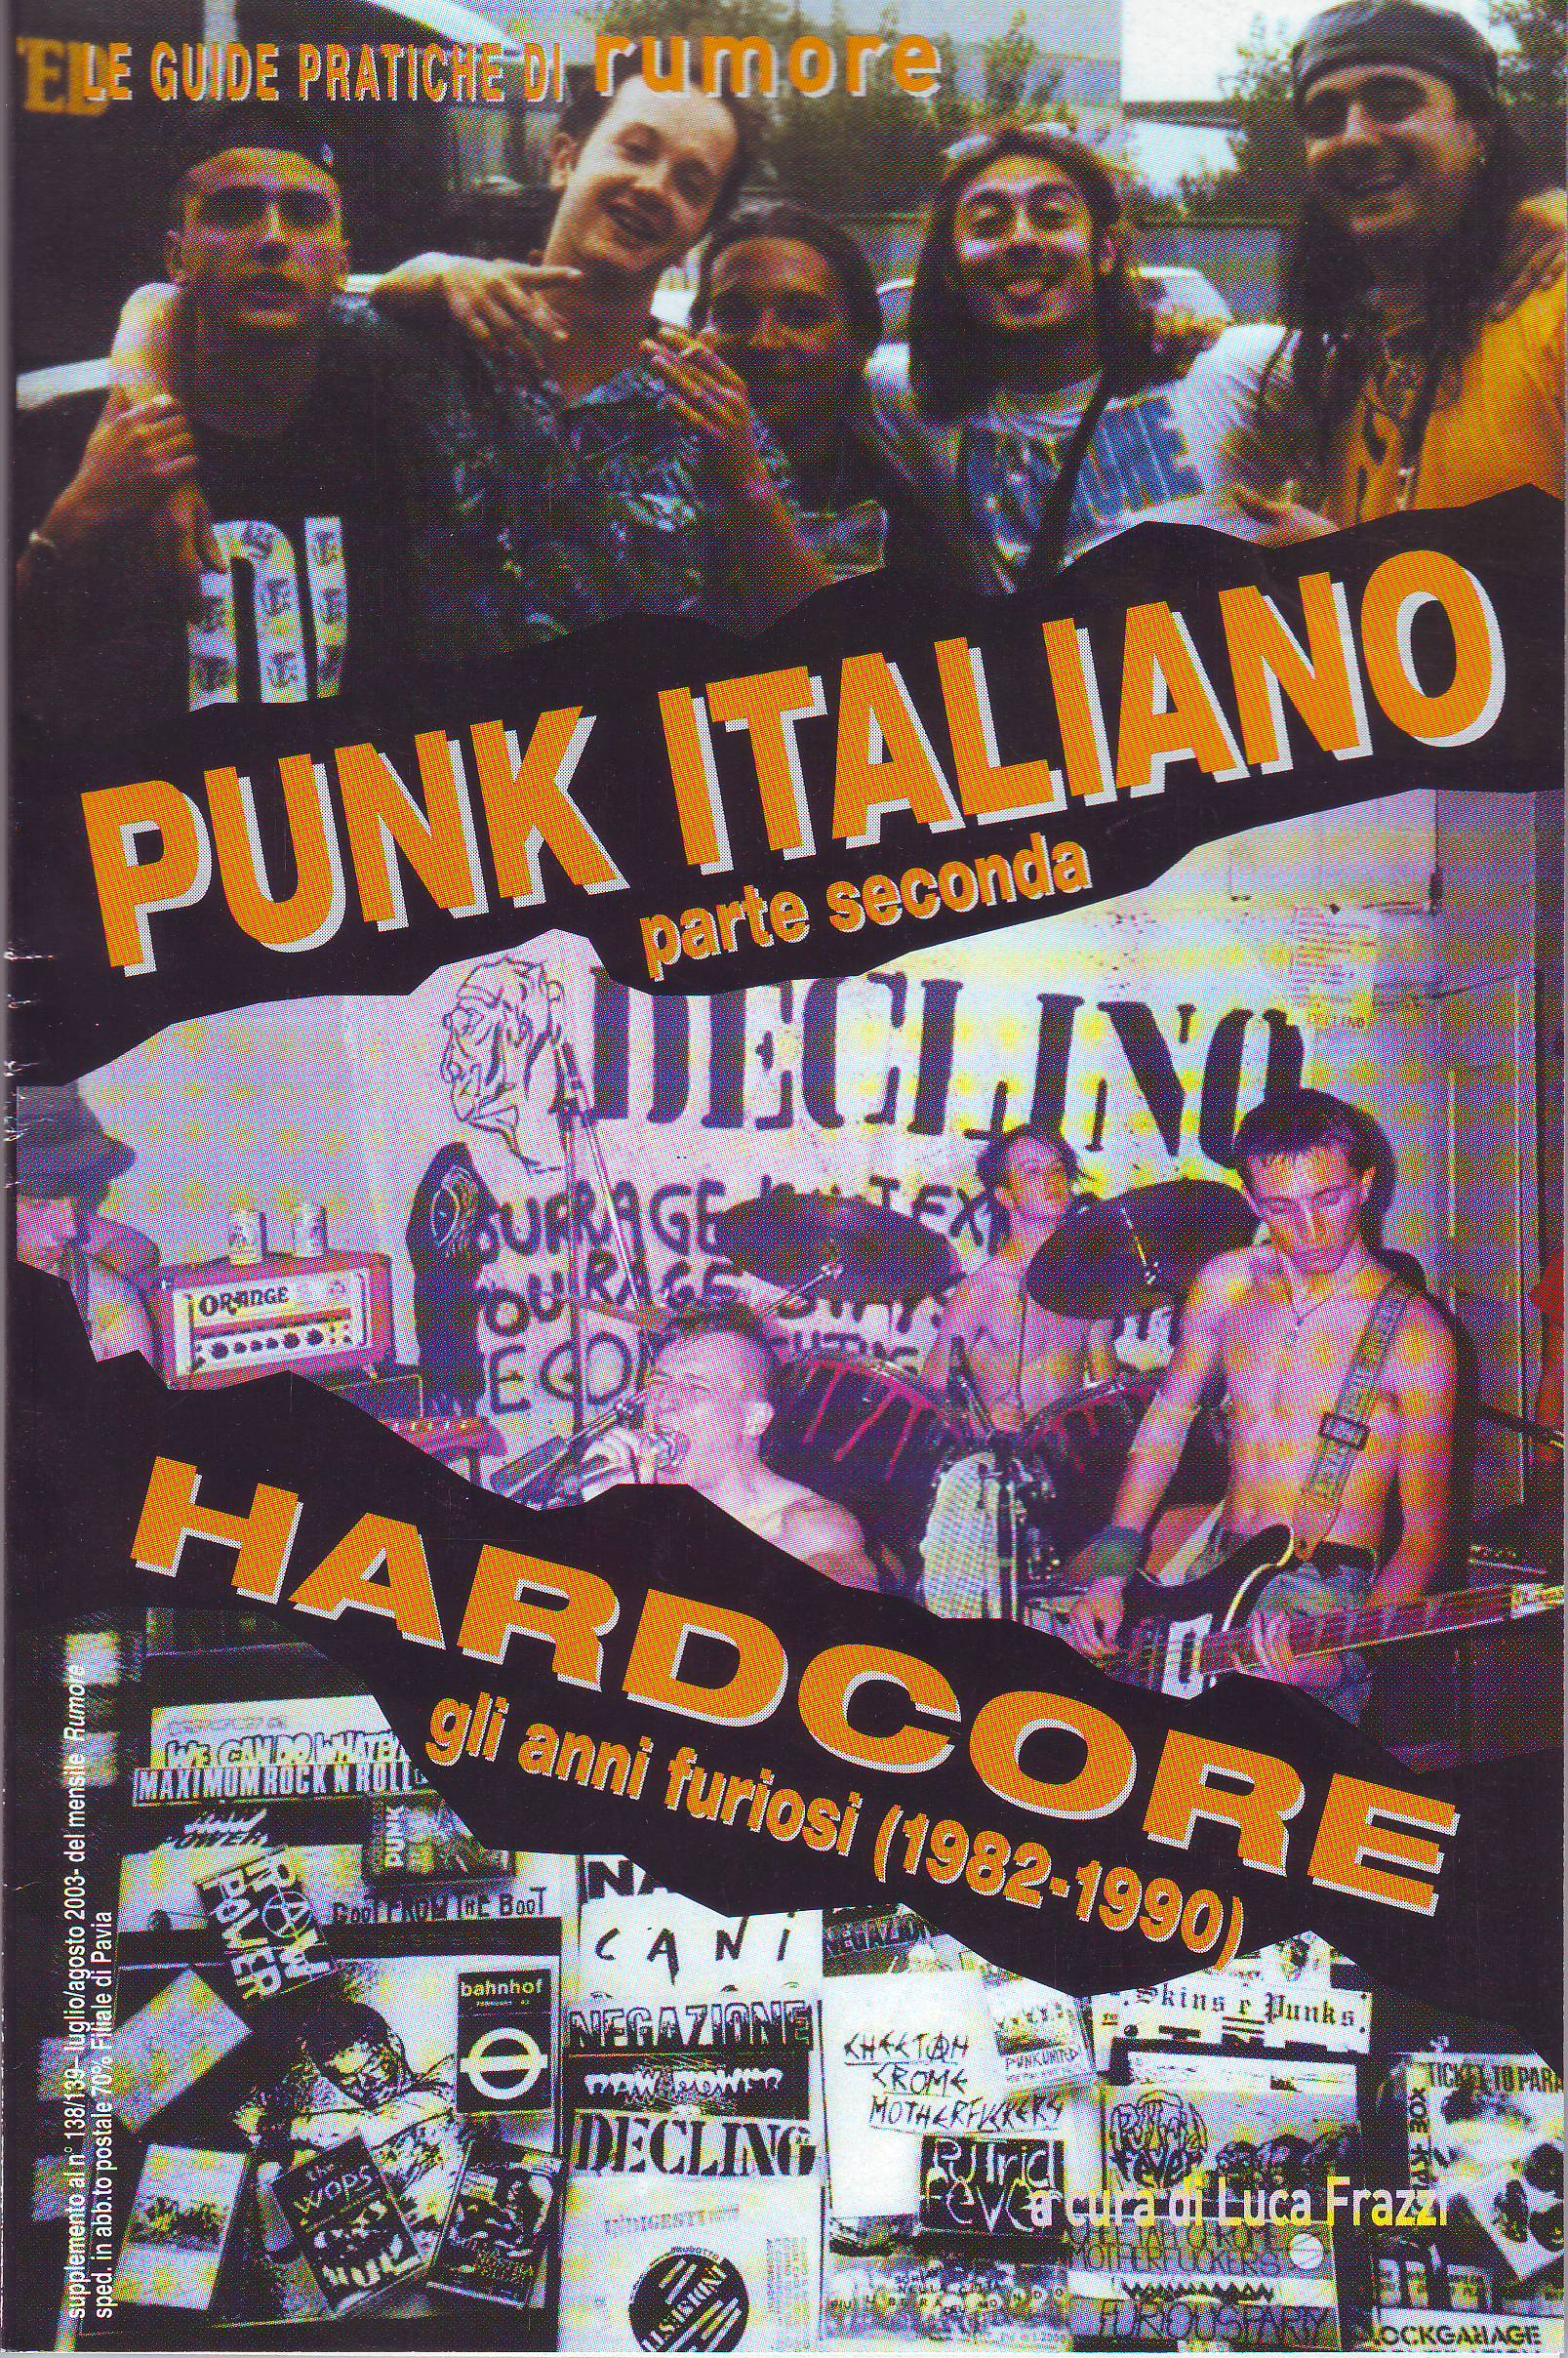 Punk italiano - part...